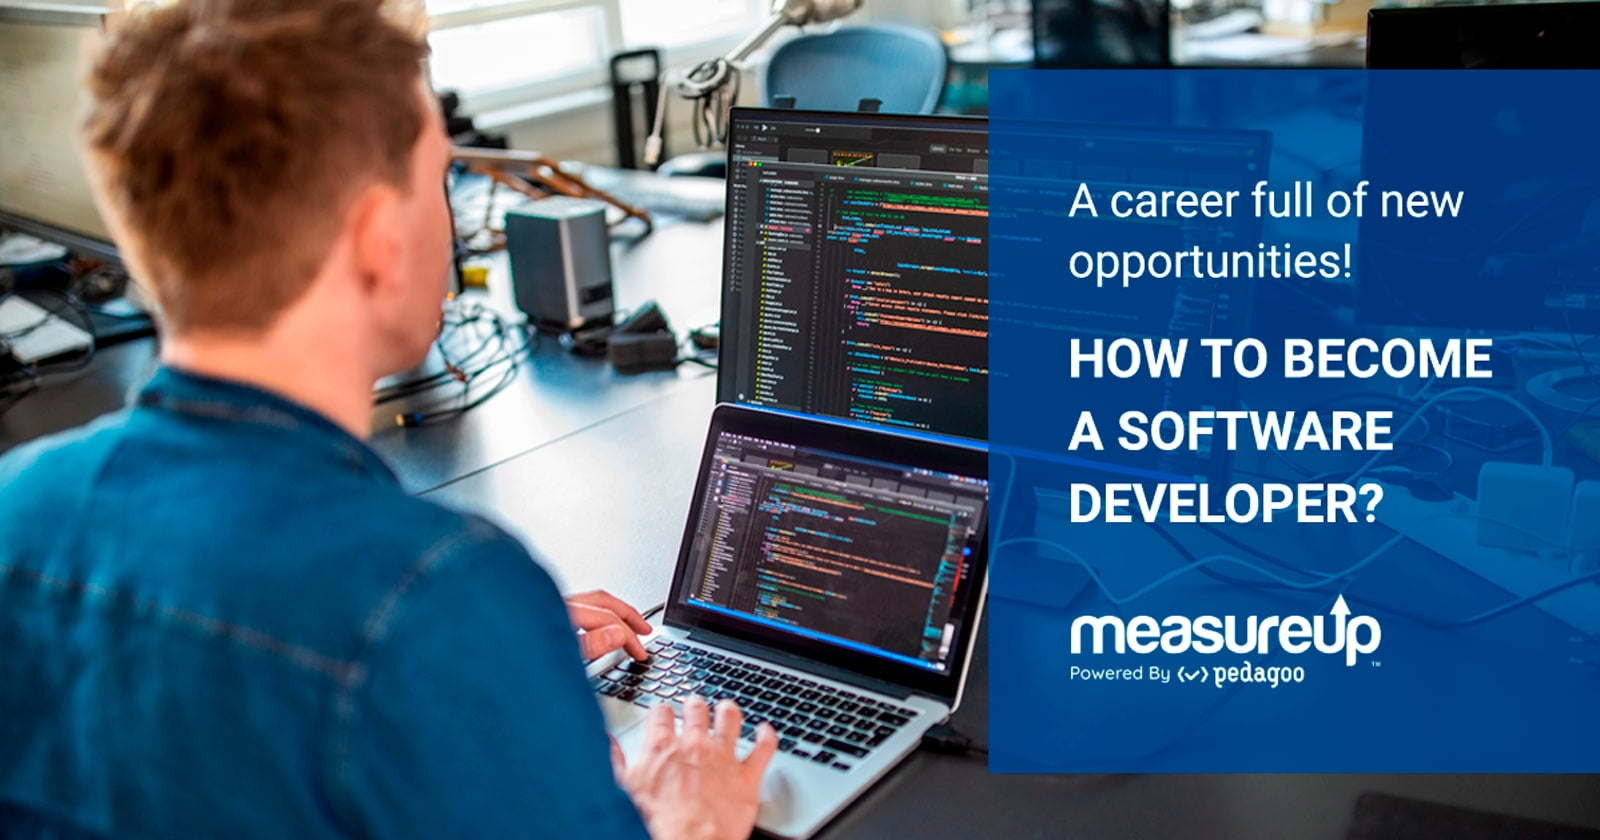 How to become a software developer in 2021?